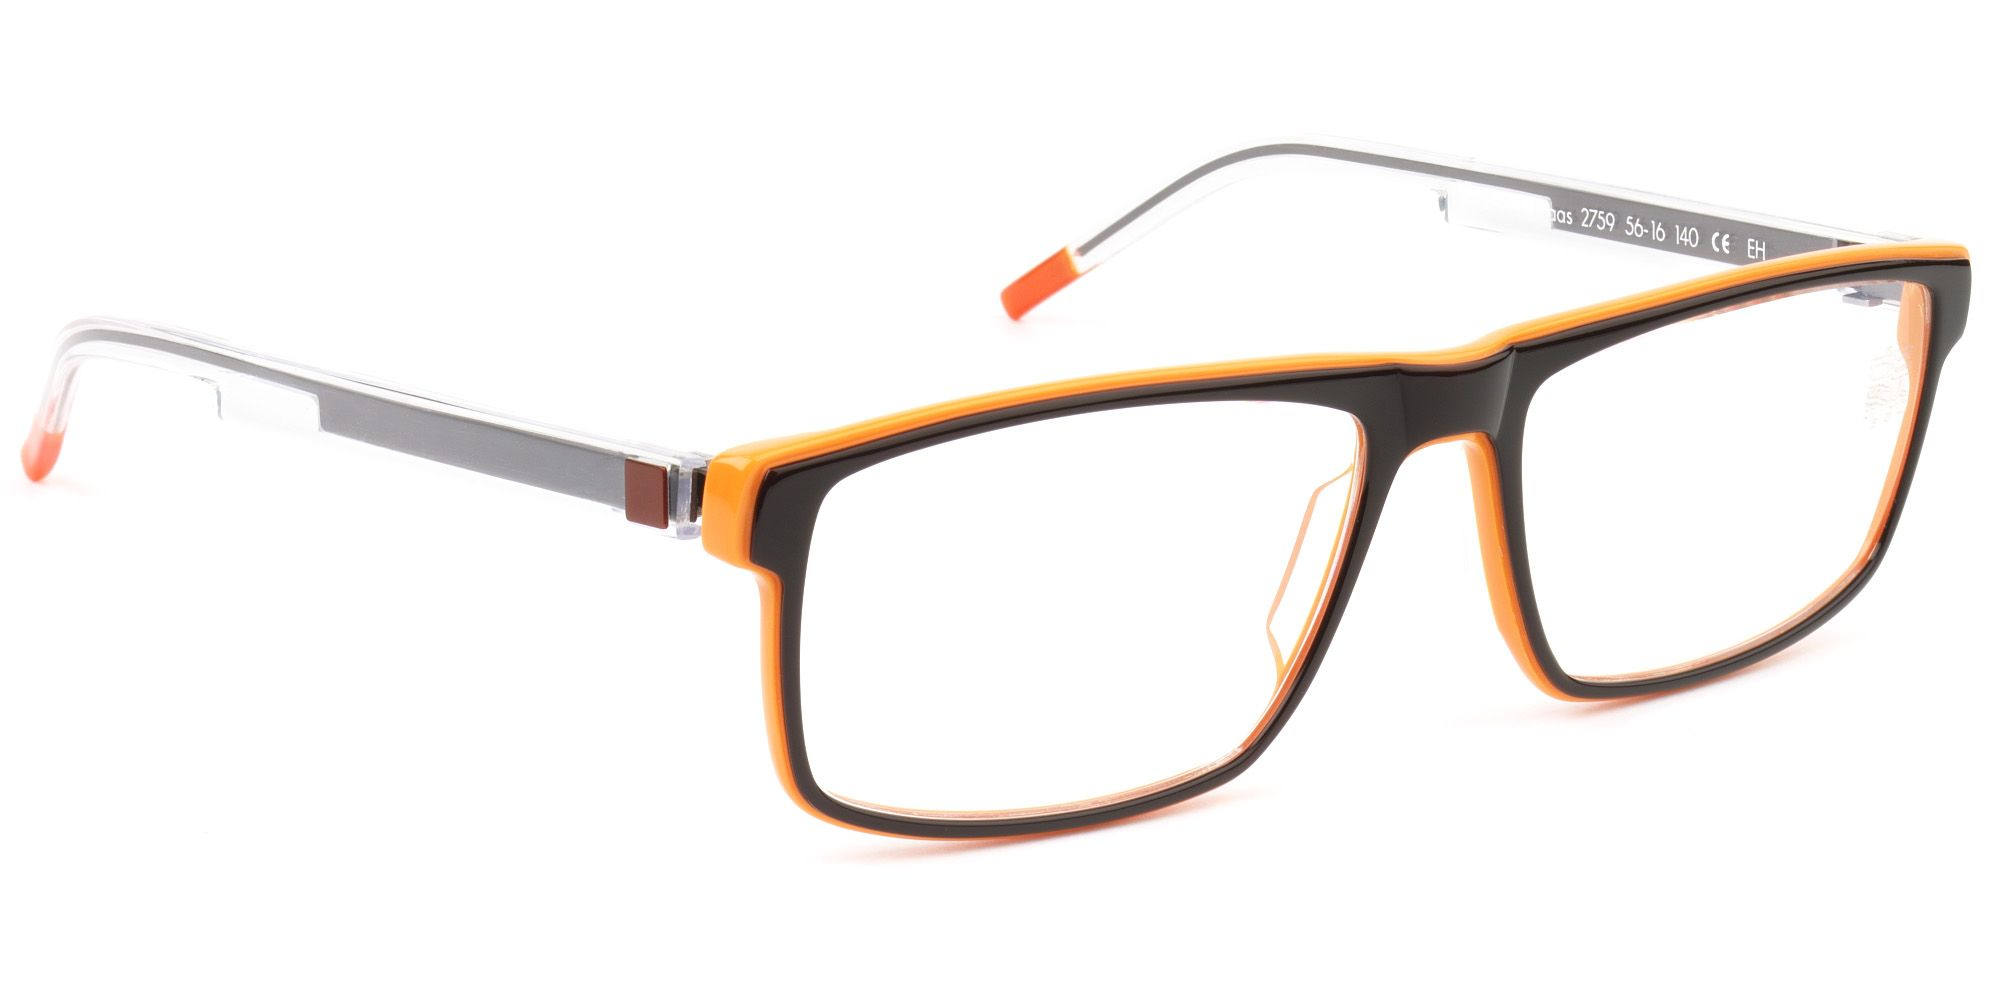 Glasses Frames Netherlands : pessimism of the intellect, optimism of the will: DE STIJL ...